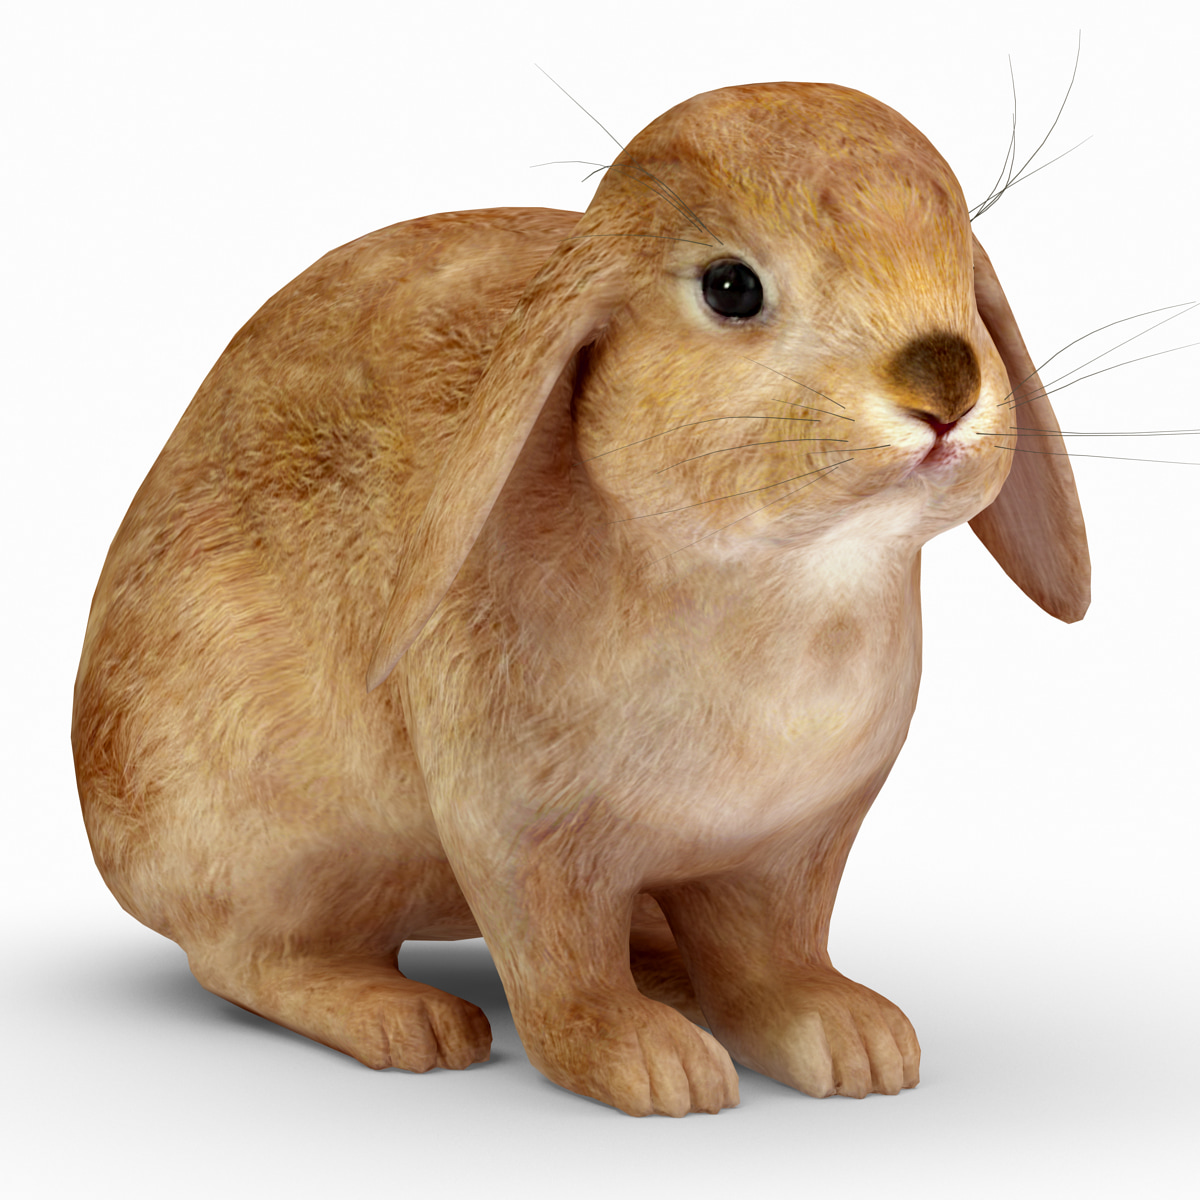 rabbit_red_001.jpg